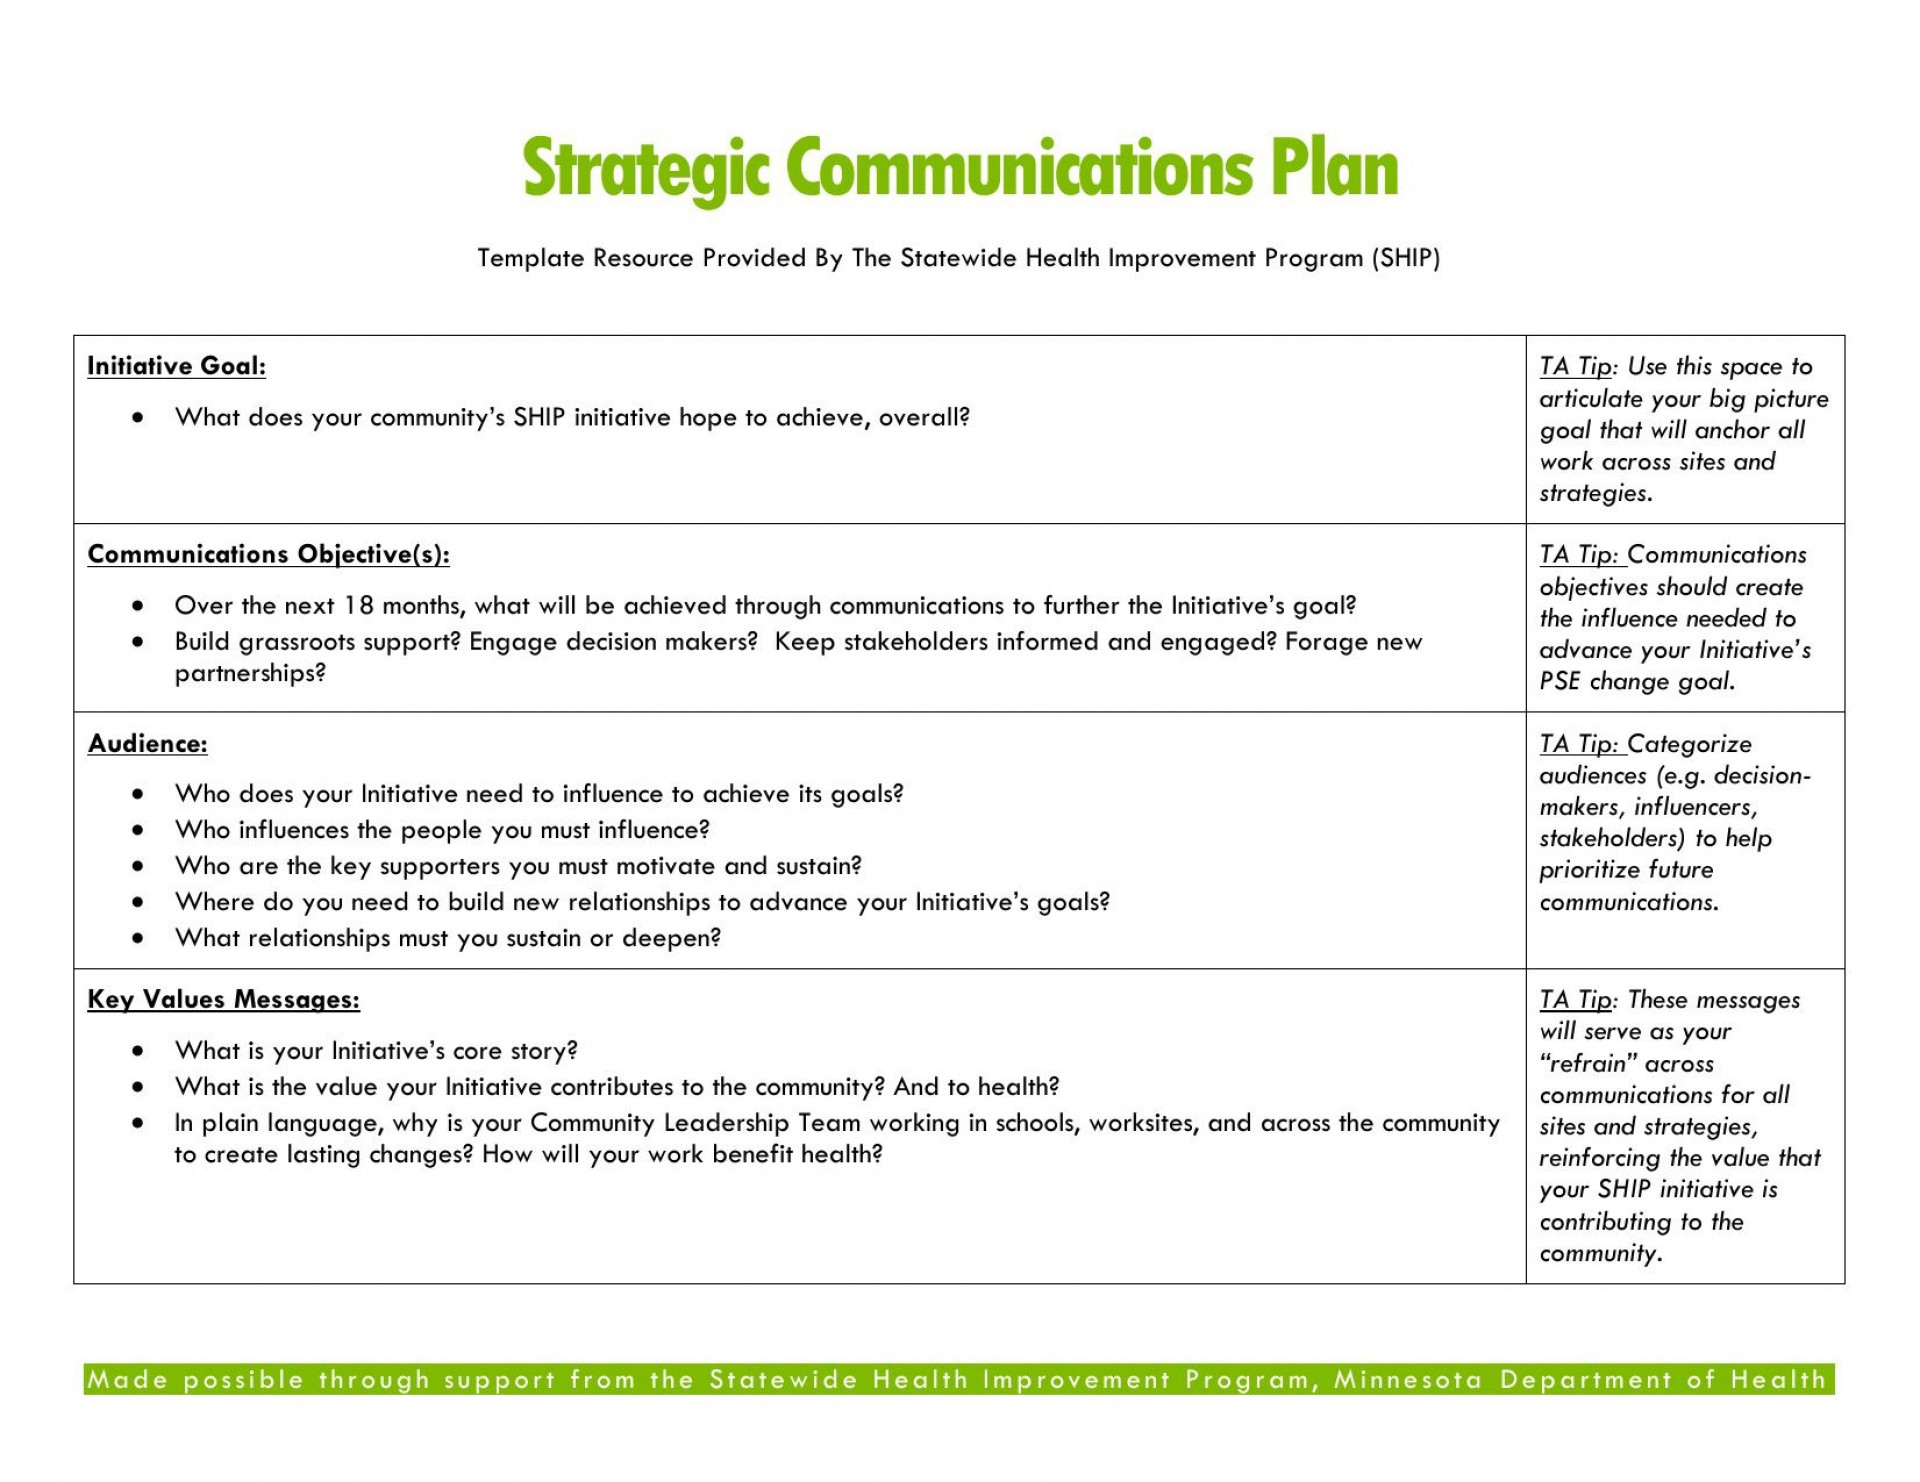 004 Impressive Strategy Communication Plan Template Photo  Internal And Action Example Sample1920